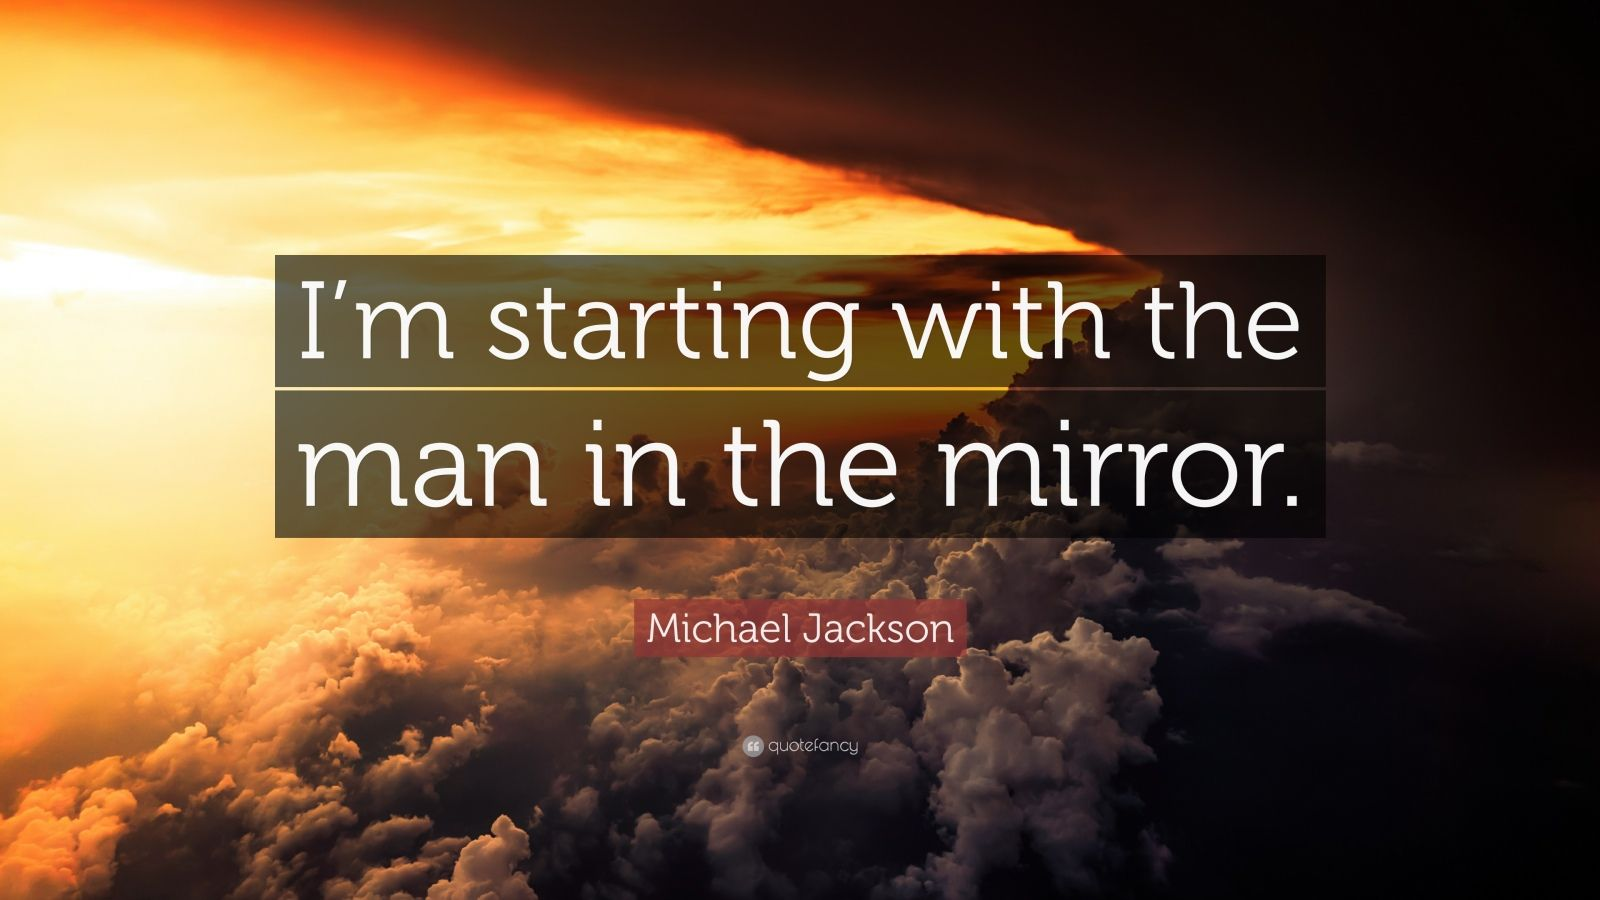 Love Quote Images Wallpaper Michael Jackson Quote I M Starting With The Man In The